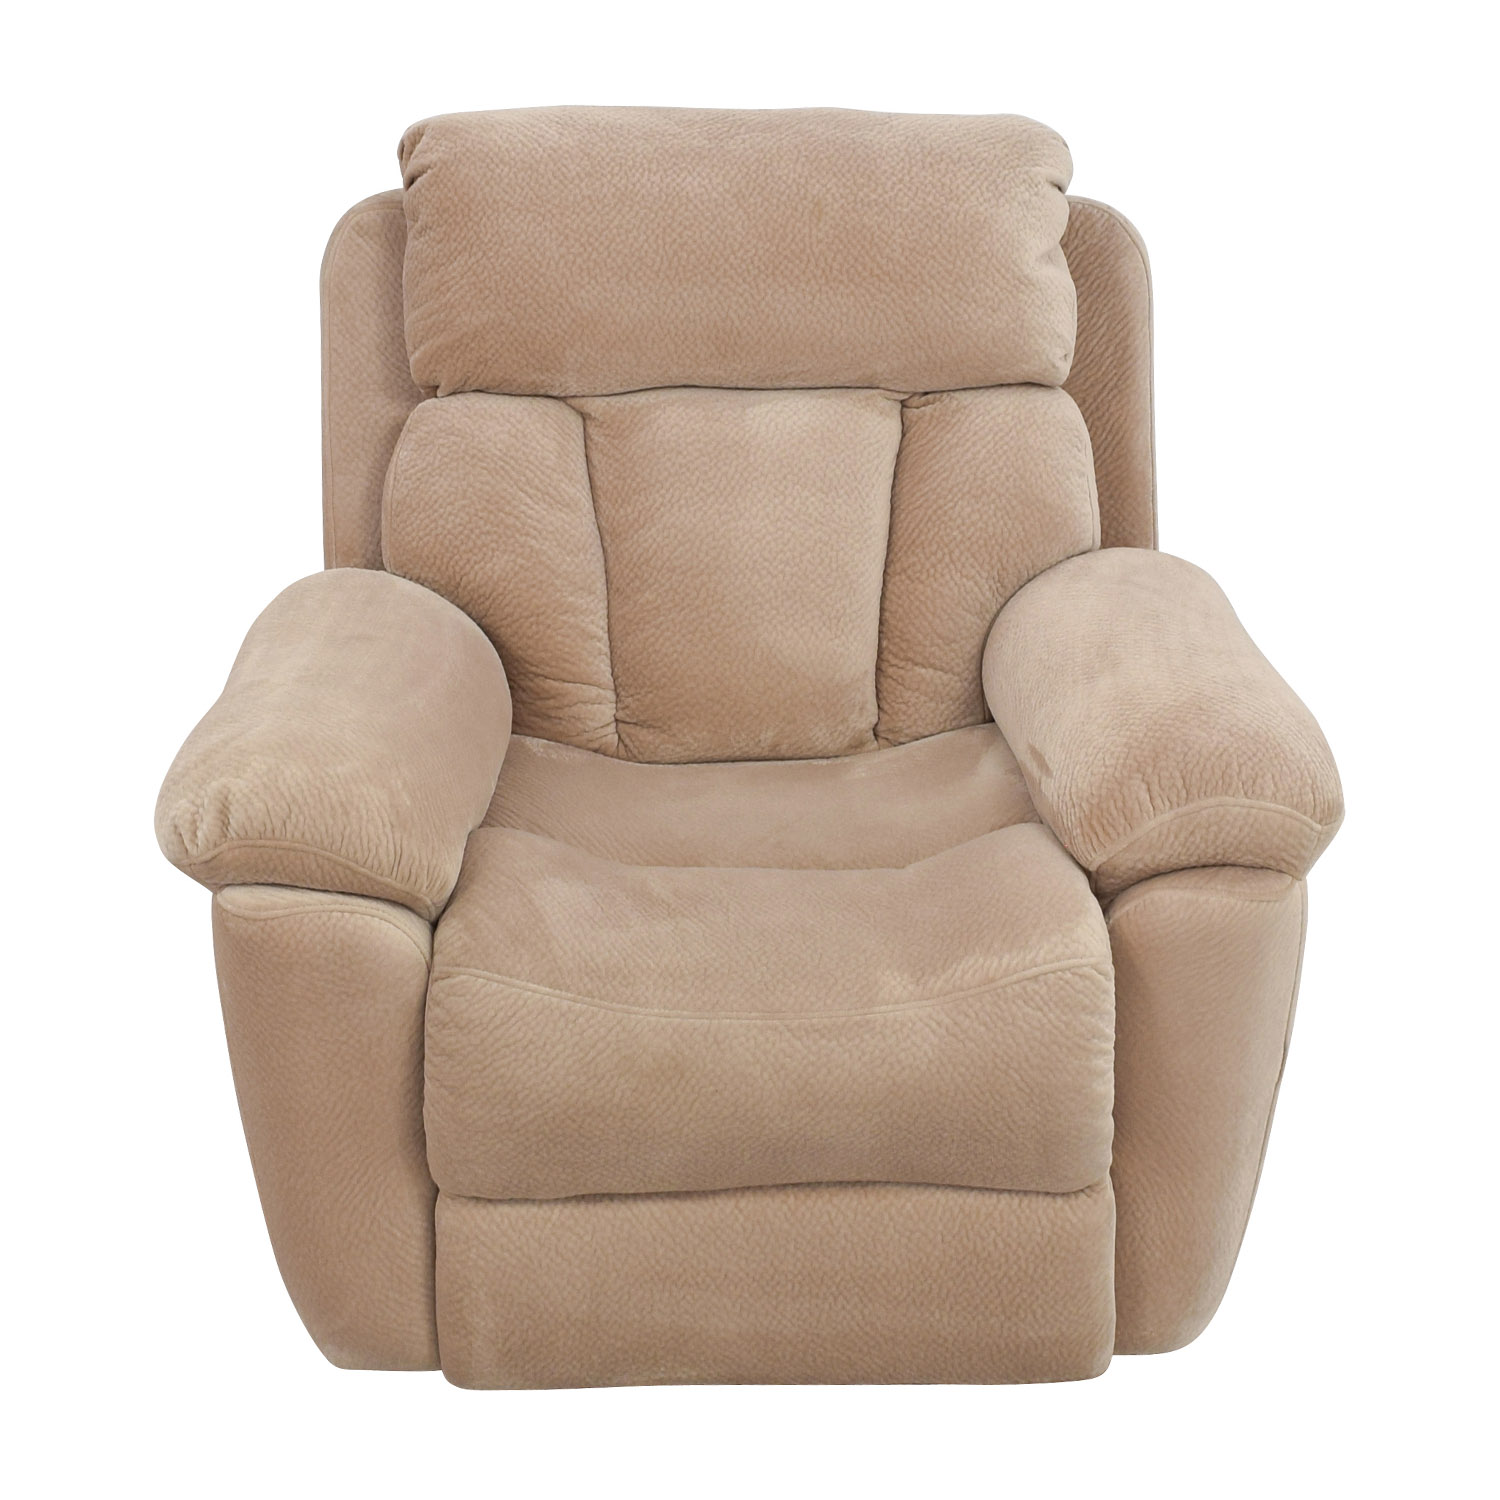 89% OFF Macy s Macy s Recliner Chair Chairs